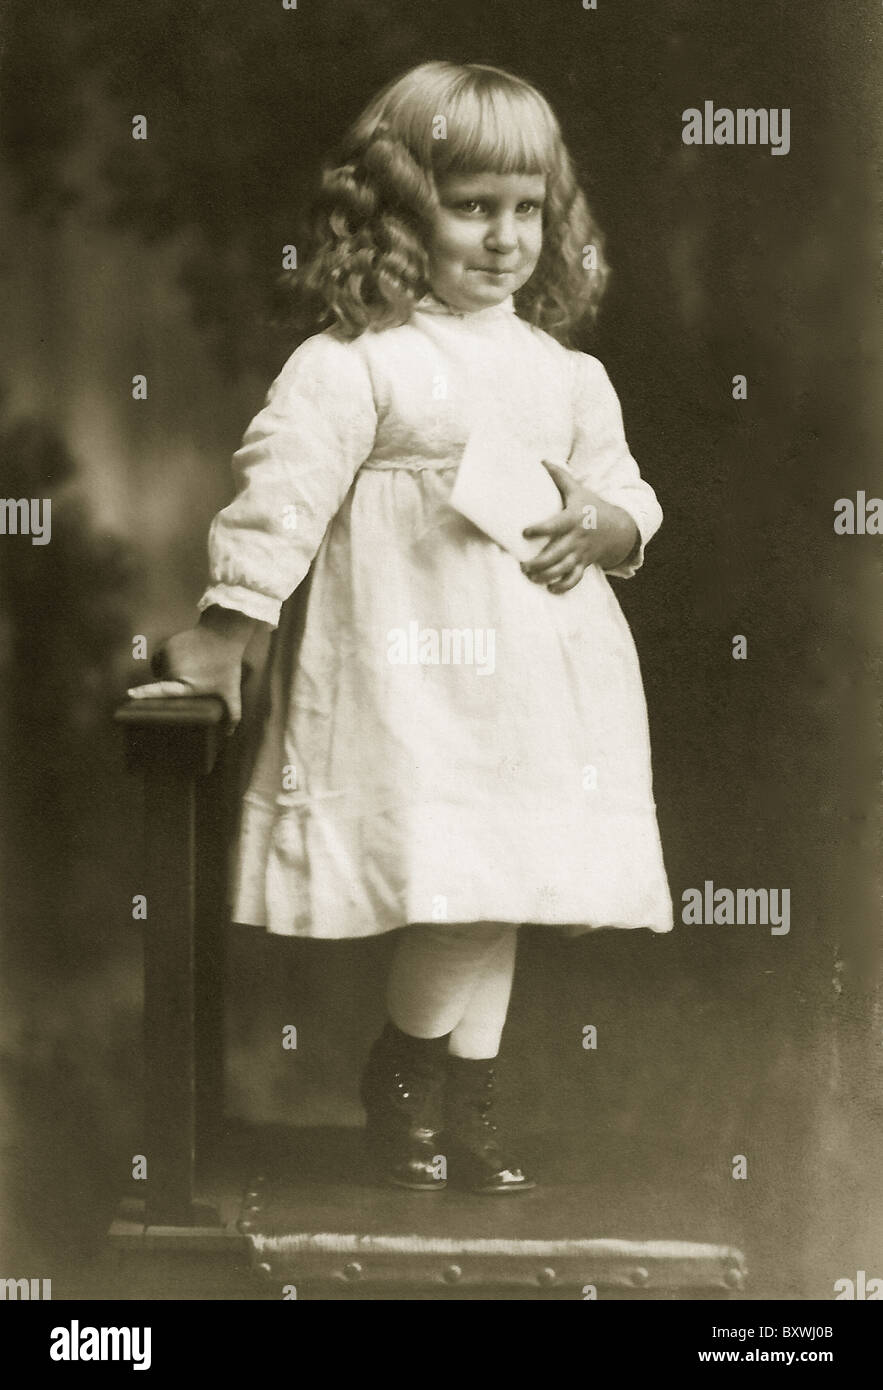 Antique Image Of A Little Boy With Long Curls Wearing A